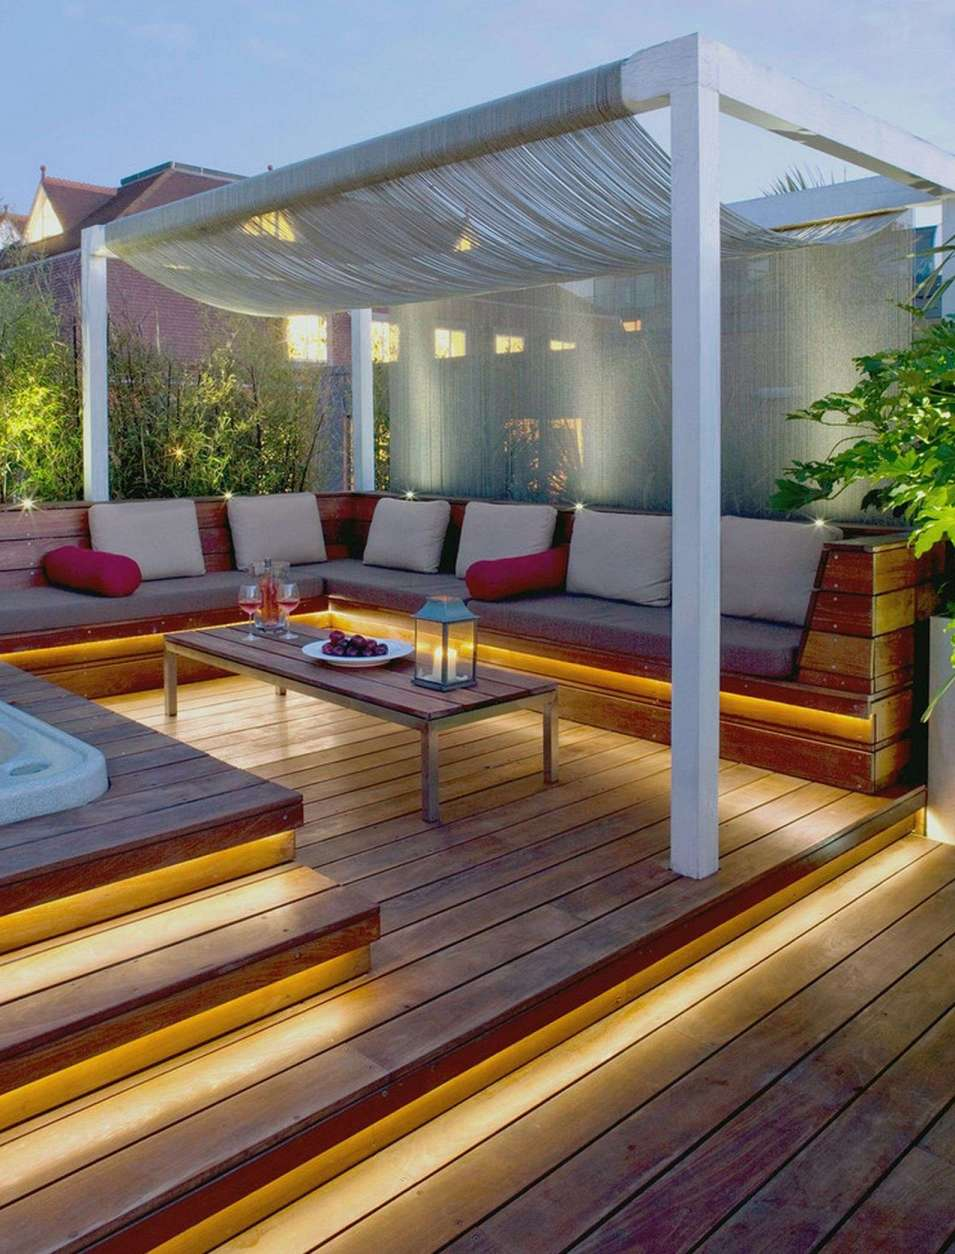 ... 39 awesome garden decking ideas inspiration of garden decking ideas ... DQNAPQF